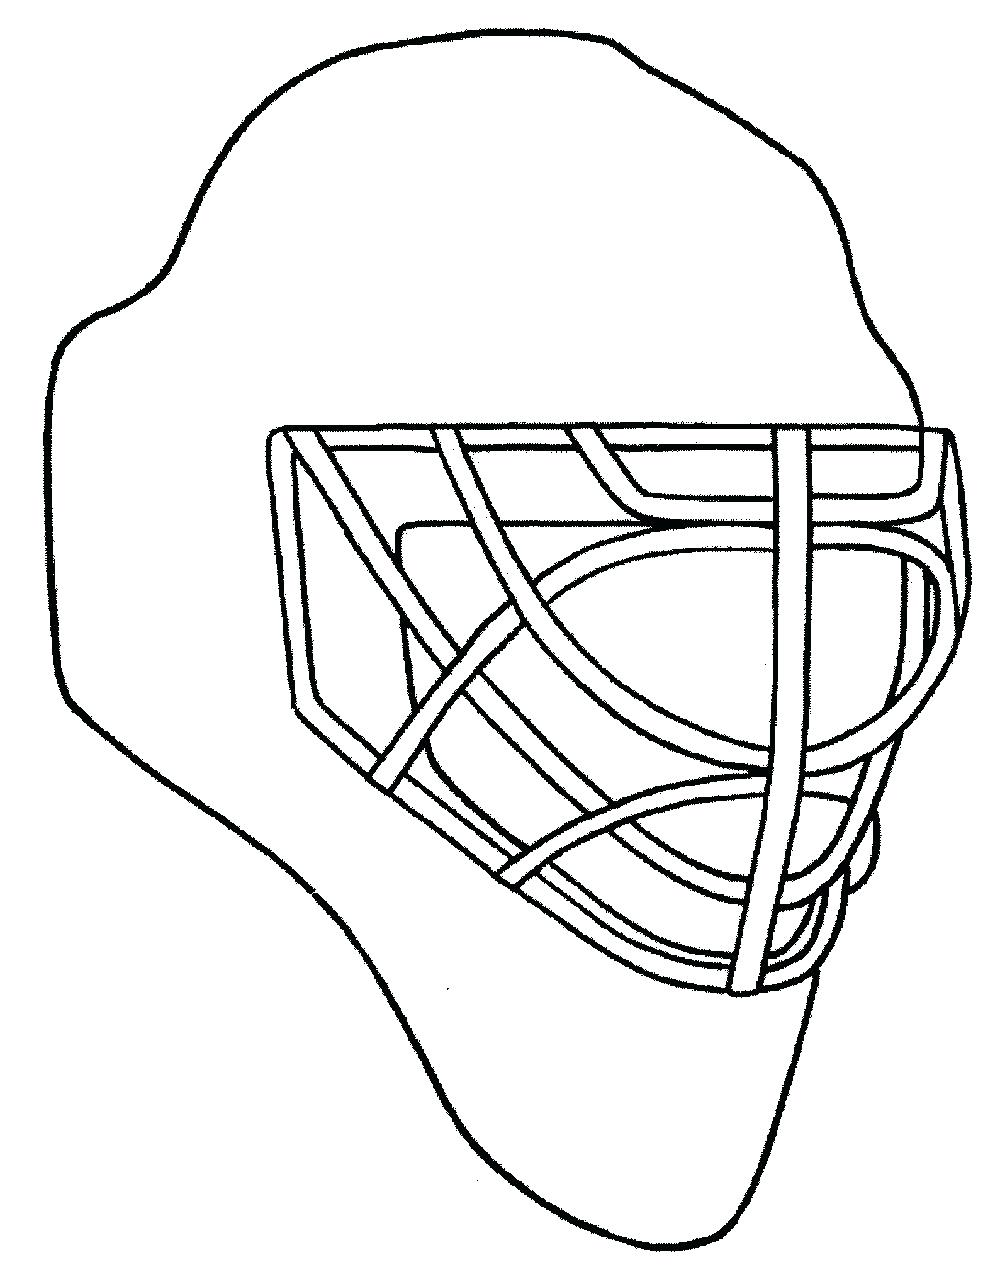 1000x1279 Image For Hockey Coloring Pages Hockey Rink Coloring Pages Hockey